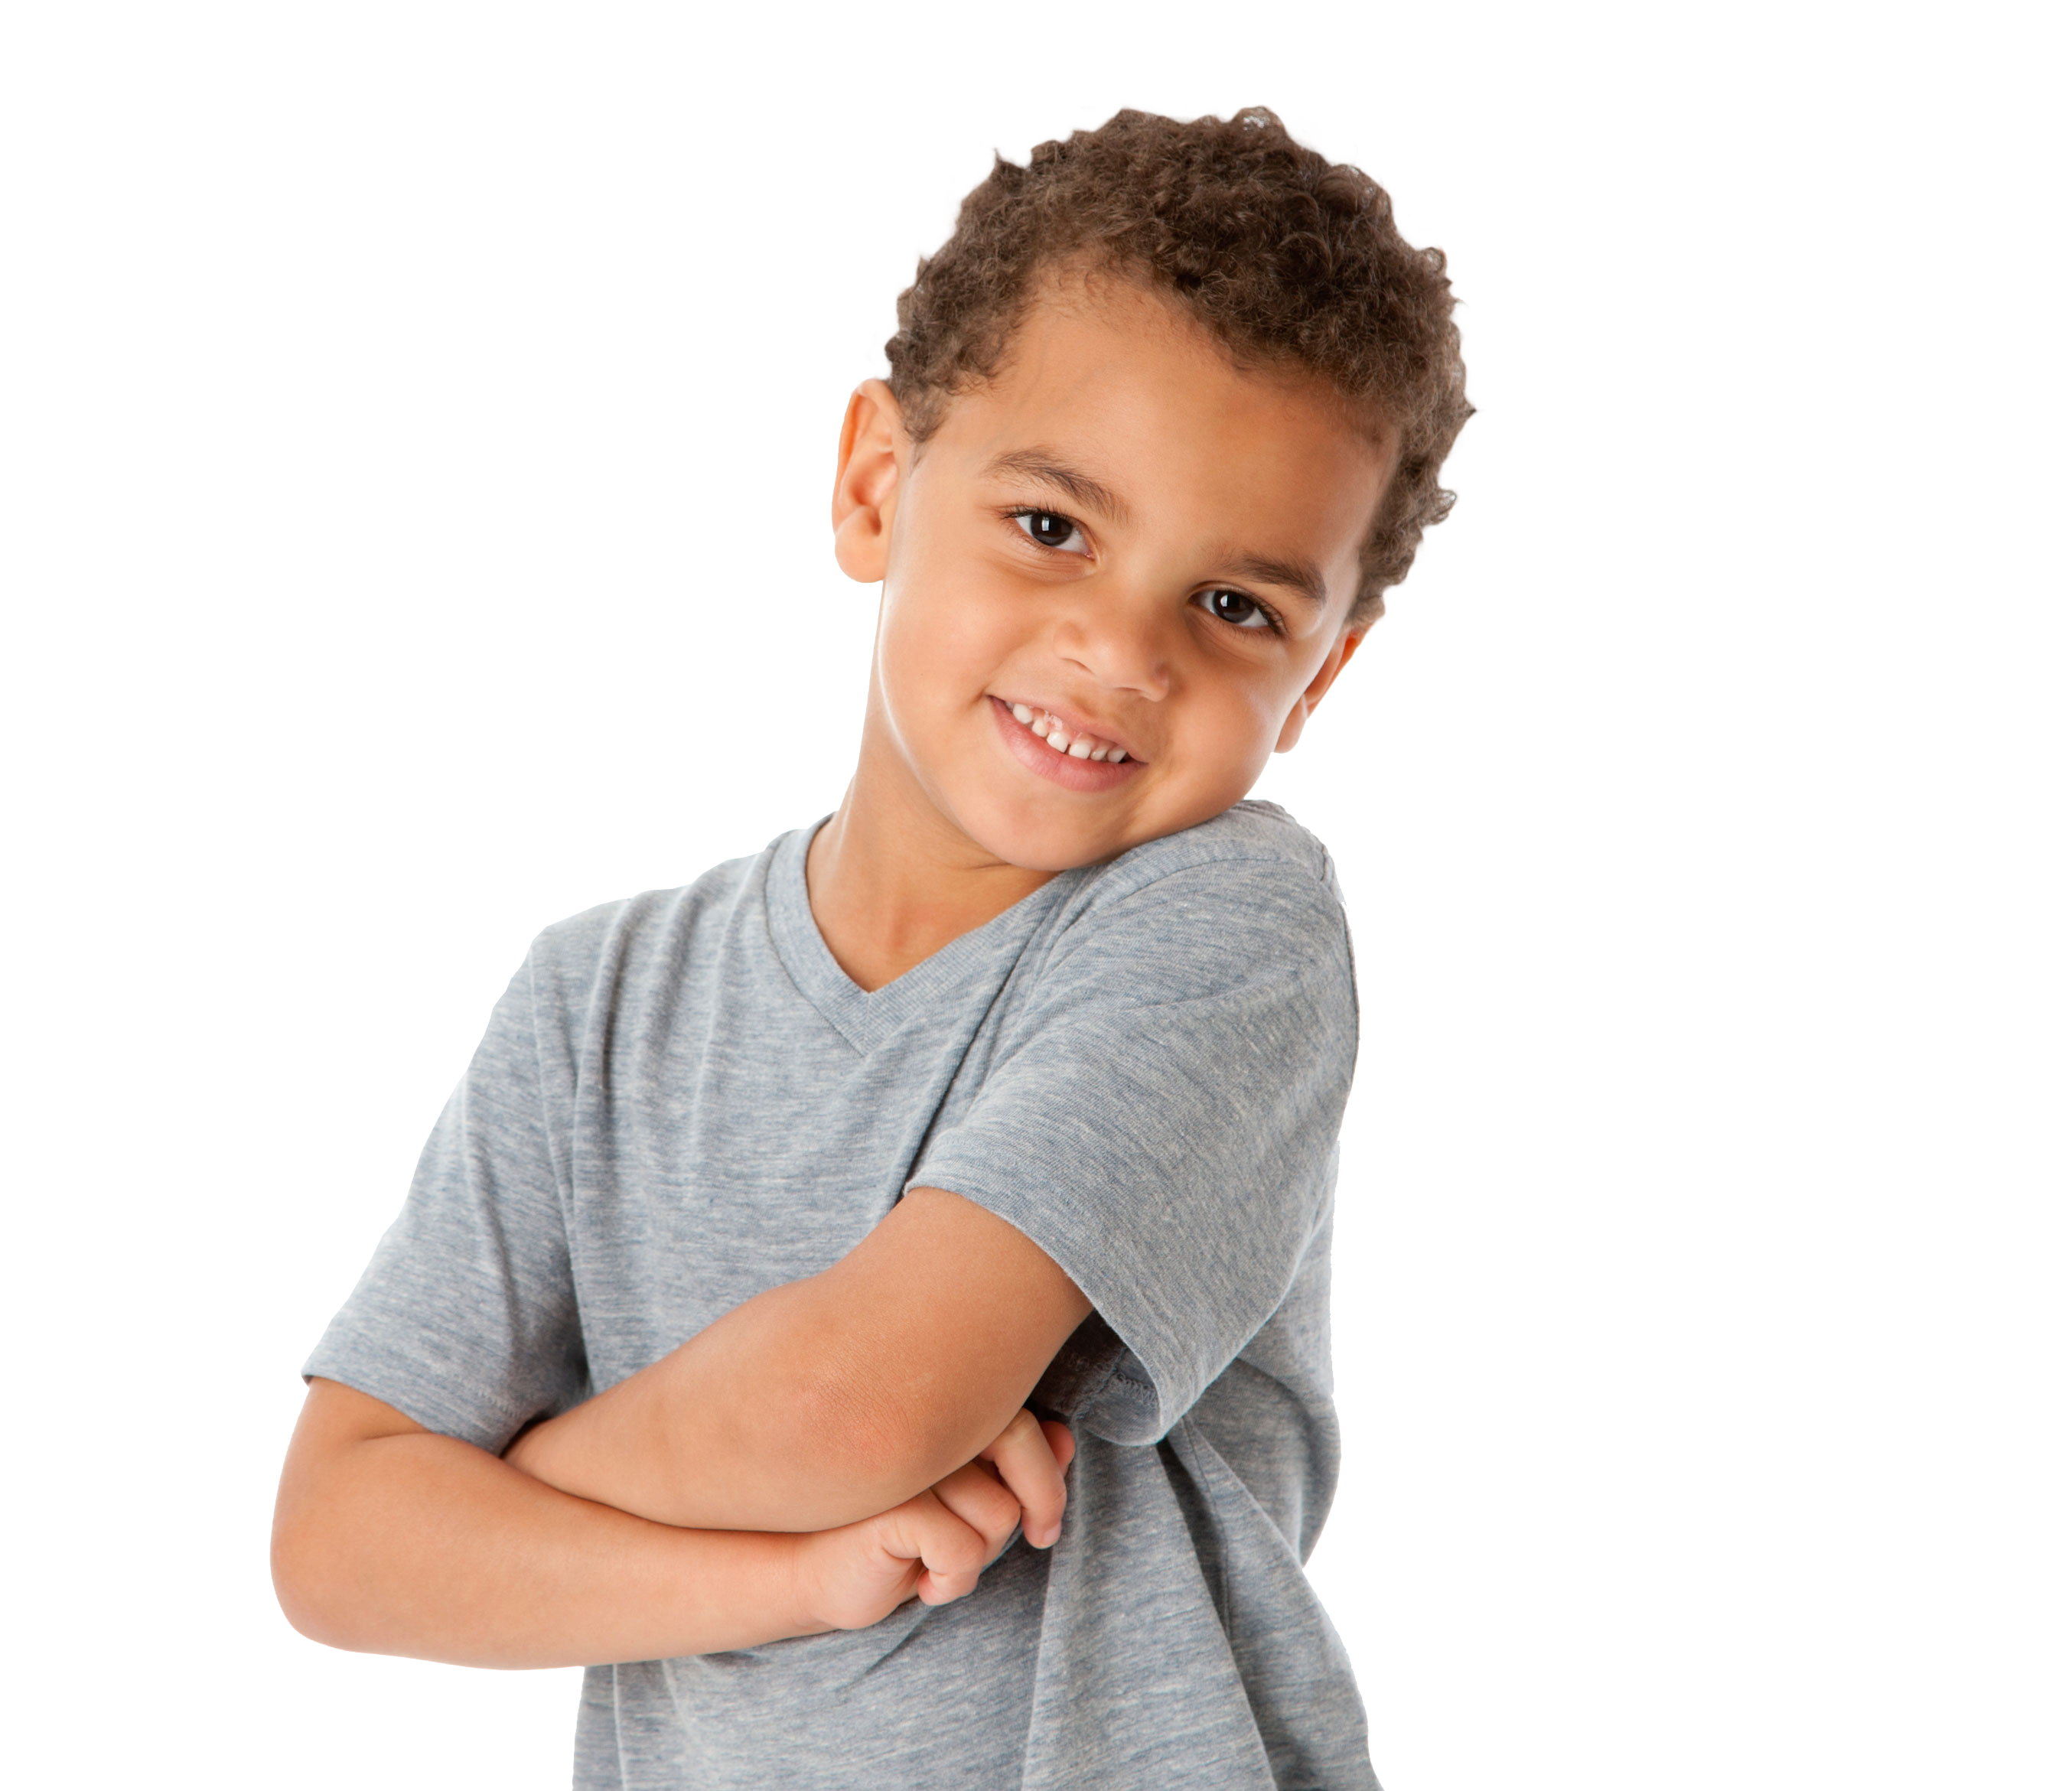 PlusPng pluspng.com Child PNG PlusPng pluspng.com - Kids Smiling PNG HD . - Kid In Bed PNG HD